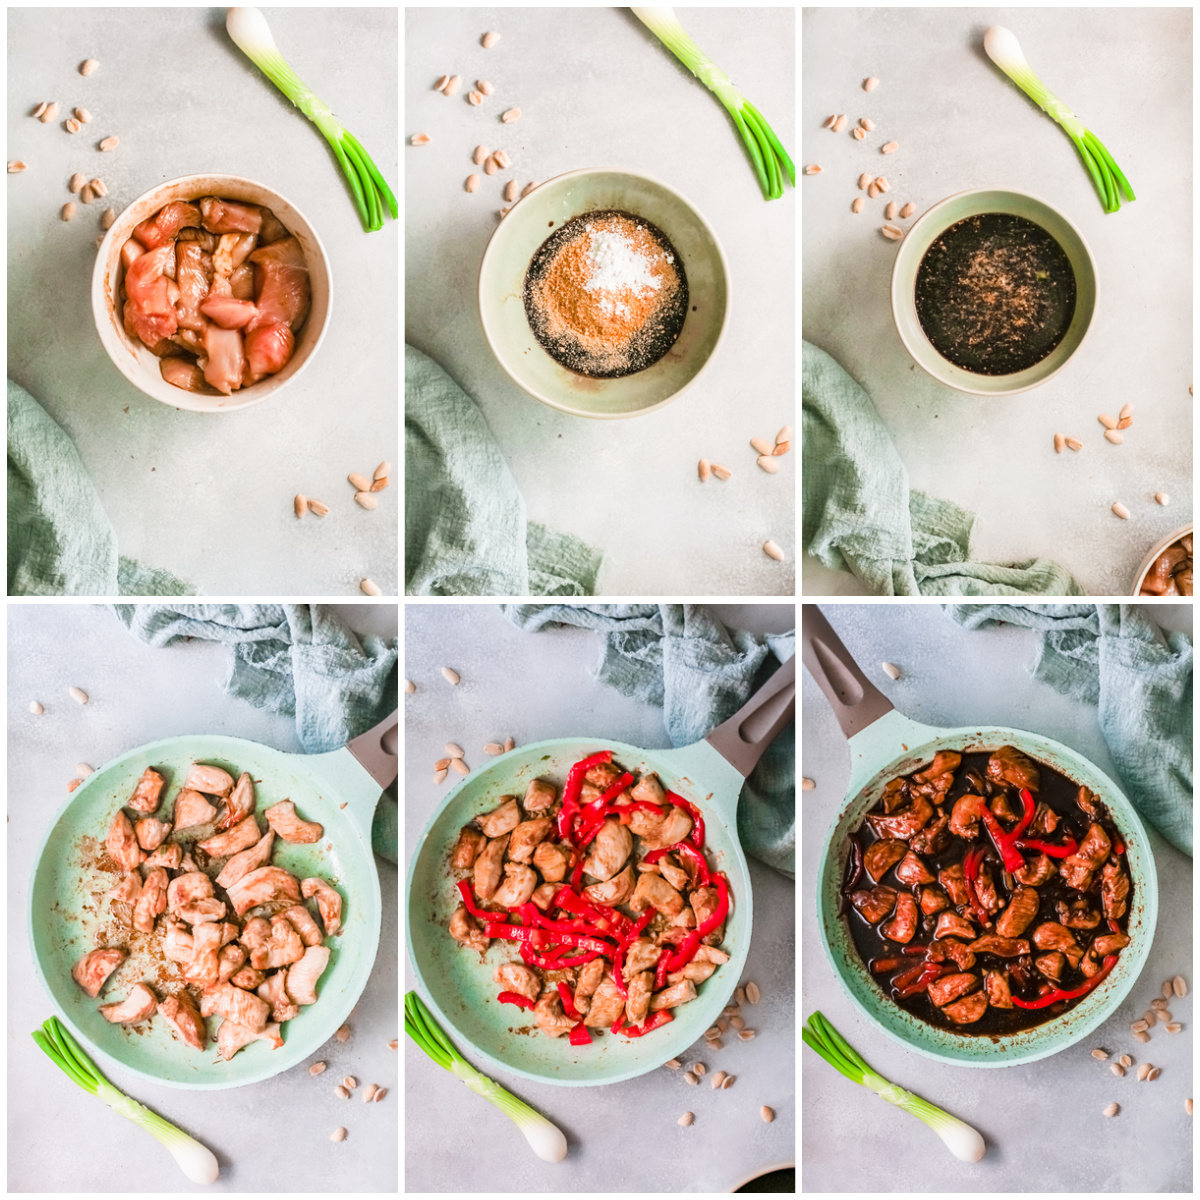 Step by step photos on how to make Kung Pao Chicken